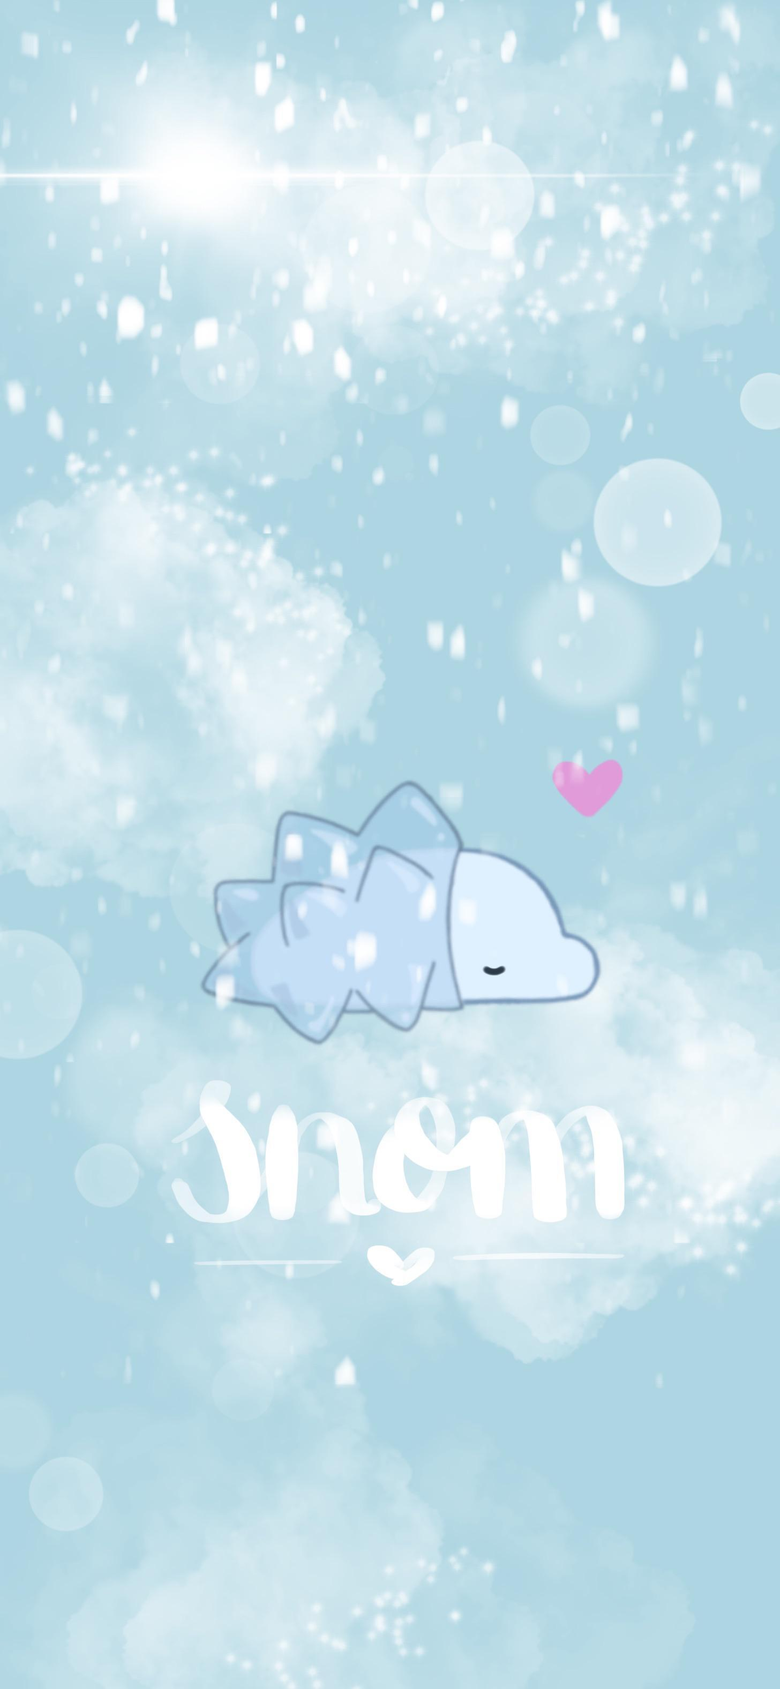 A snowy snom for my phone backgrounds this winter